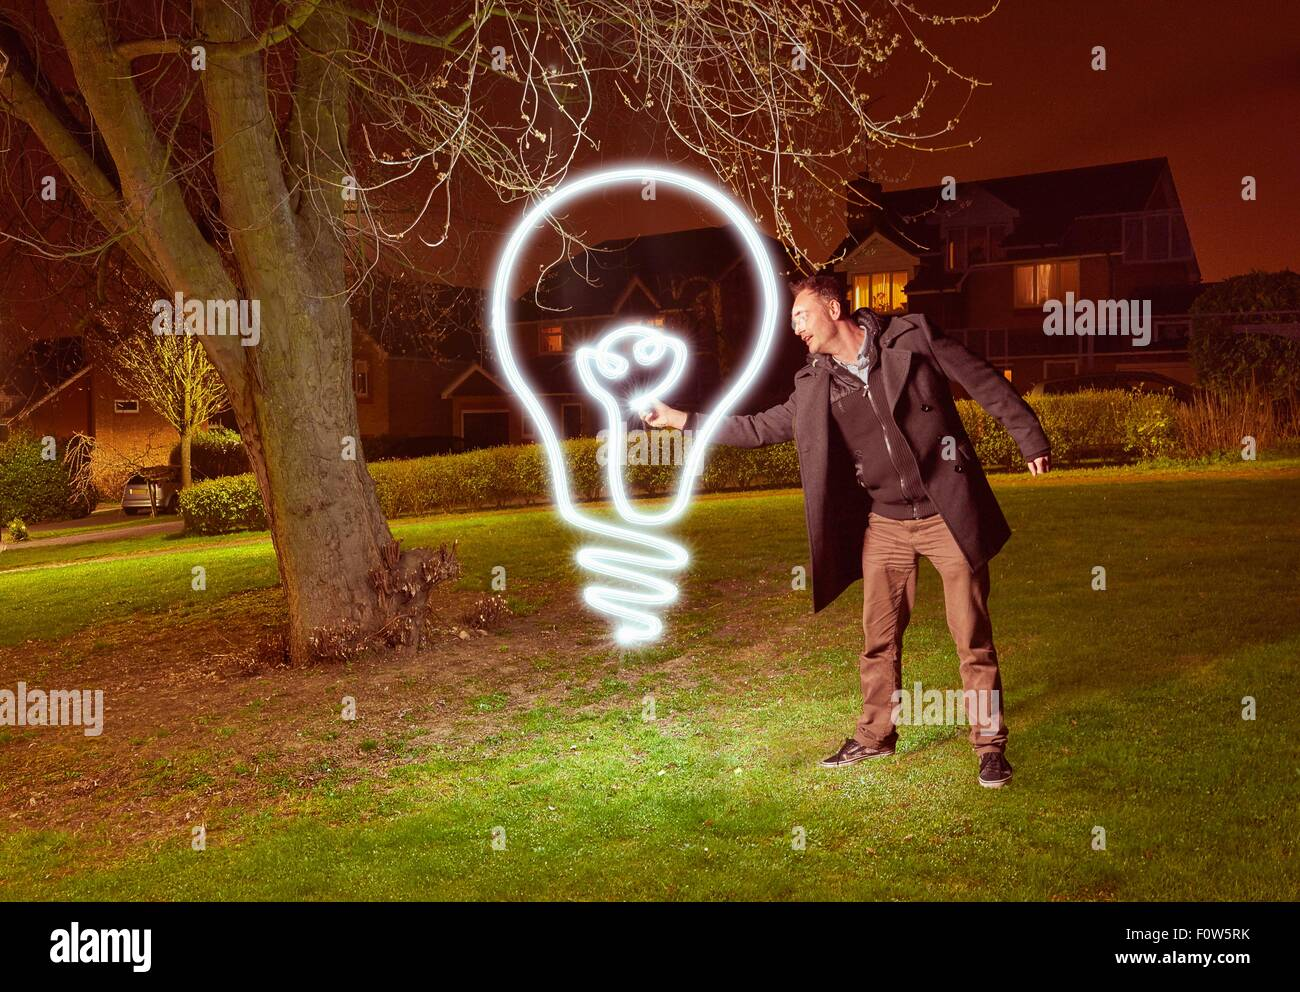 Painting Stock Photos  for Painted Light Bulb Art  76uhy